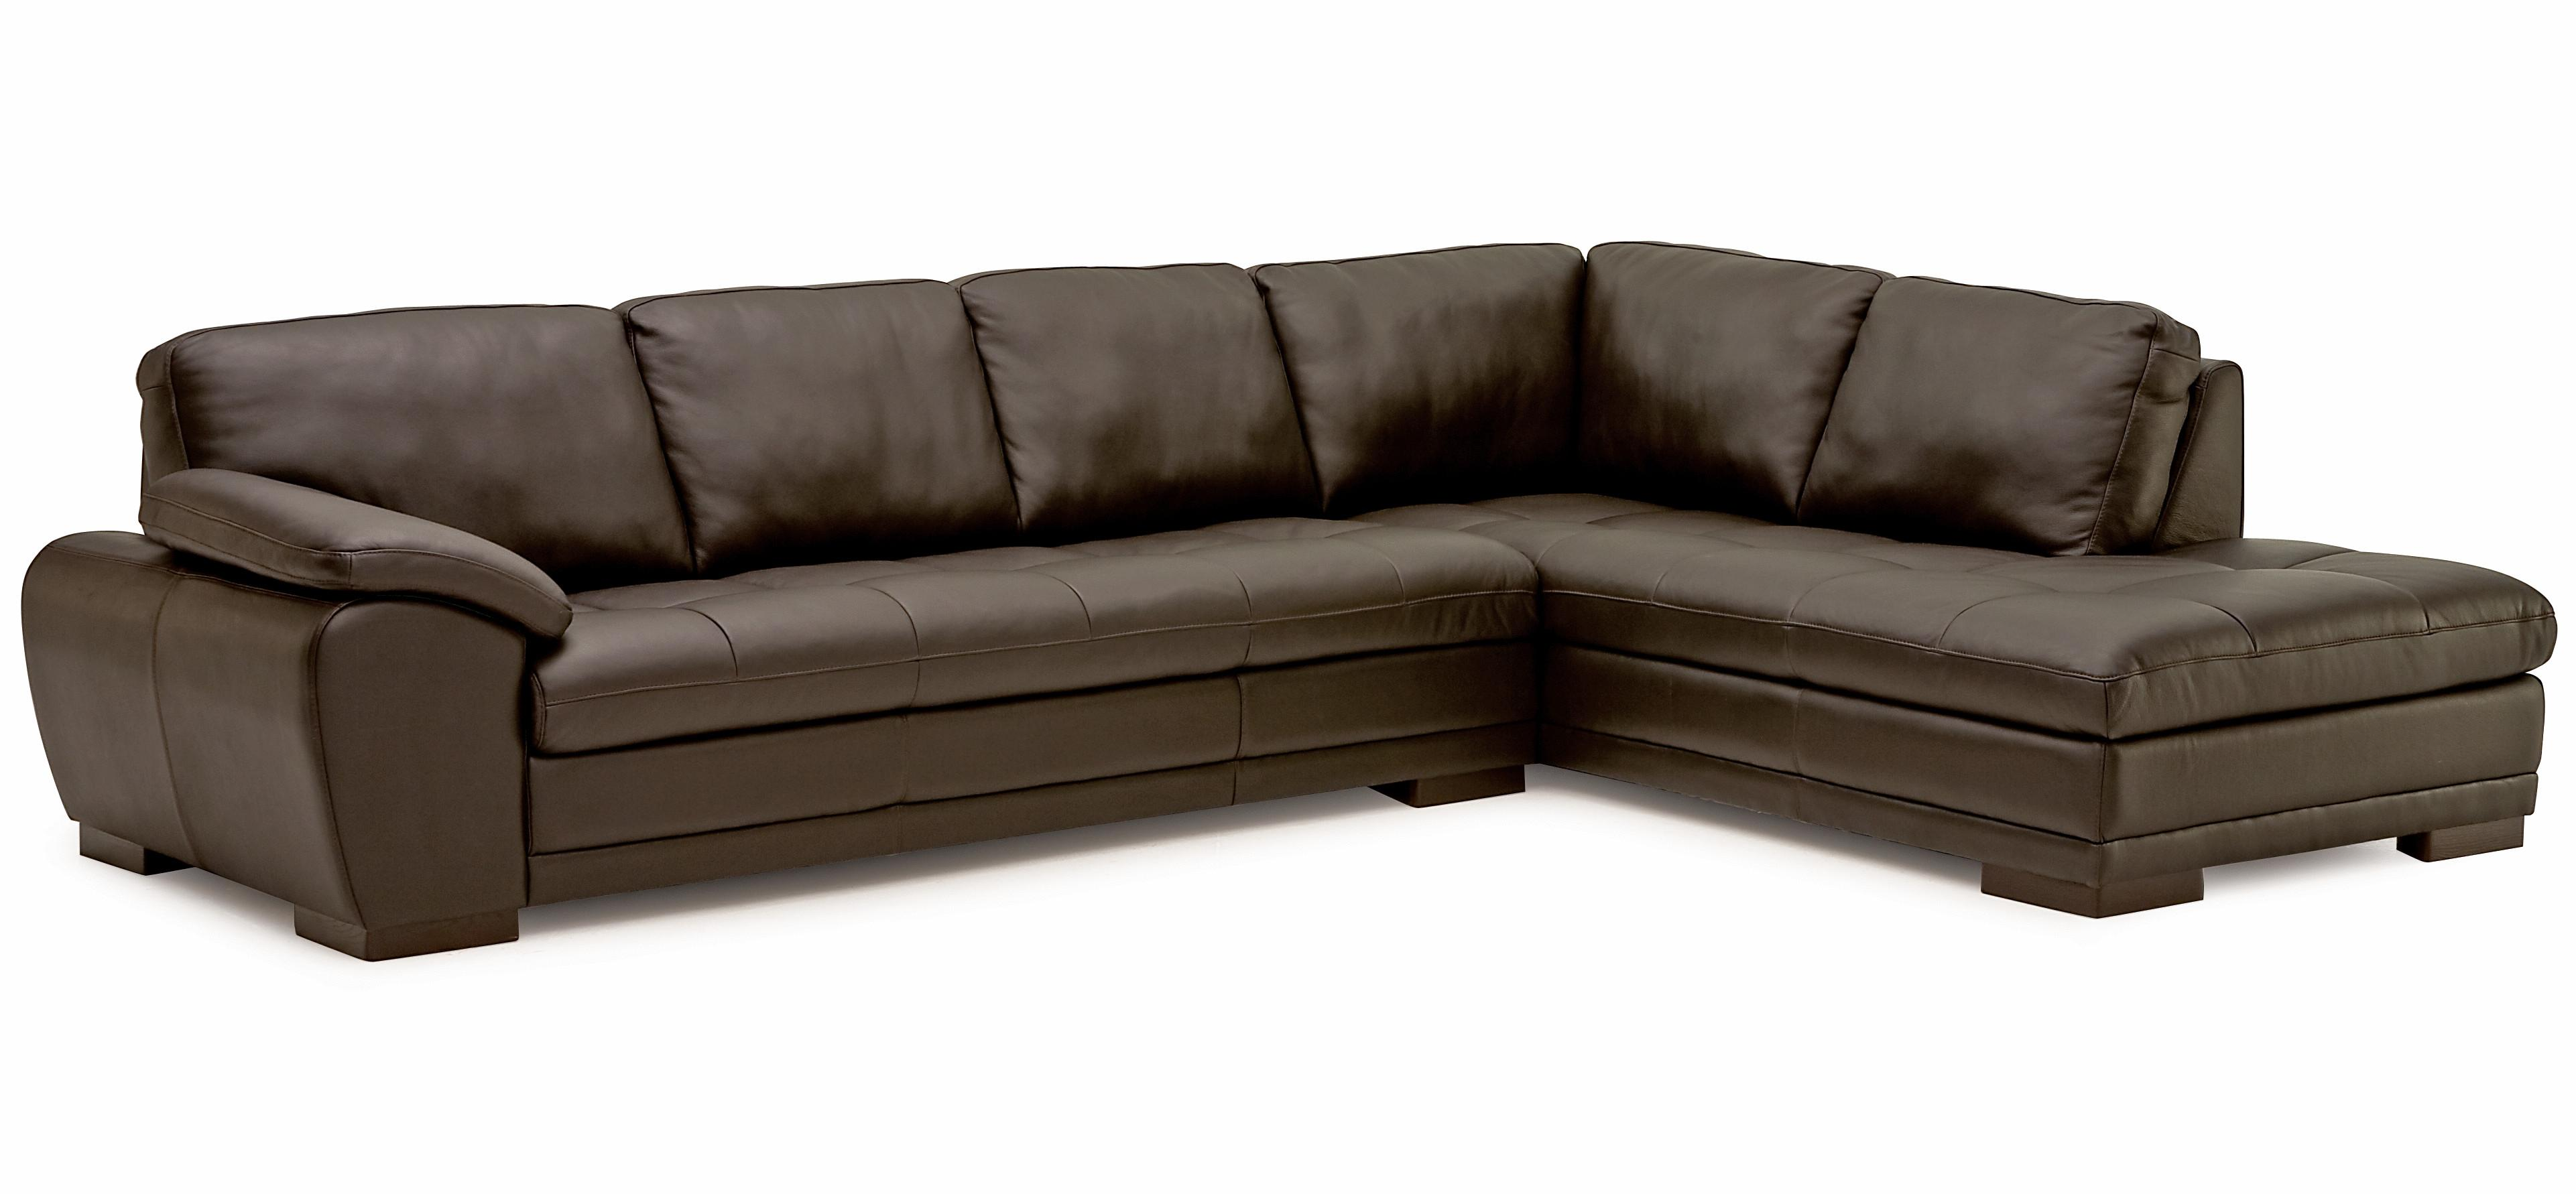 Palliser miami contemporary 2 piece sectional sofa with for Chaise contemporary